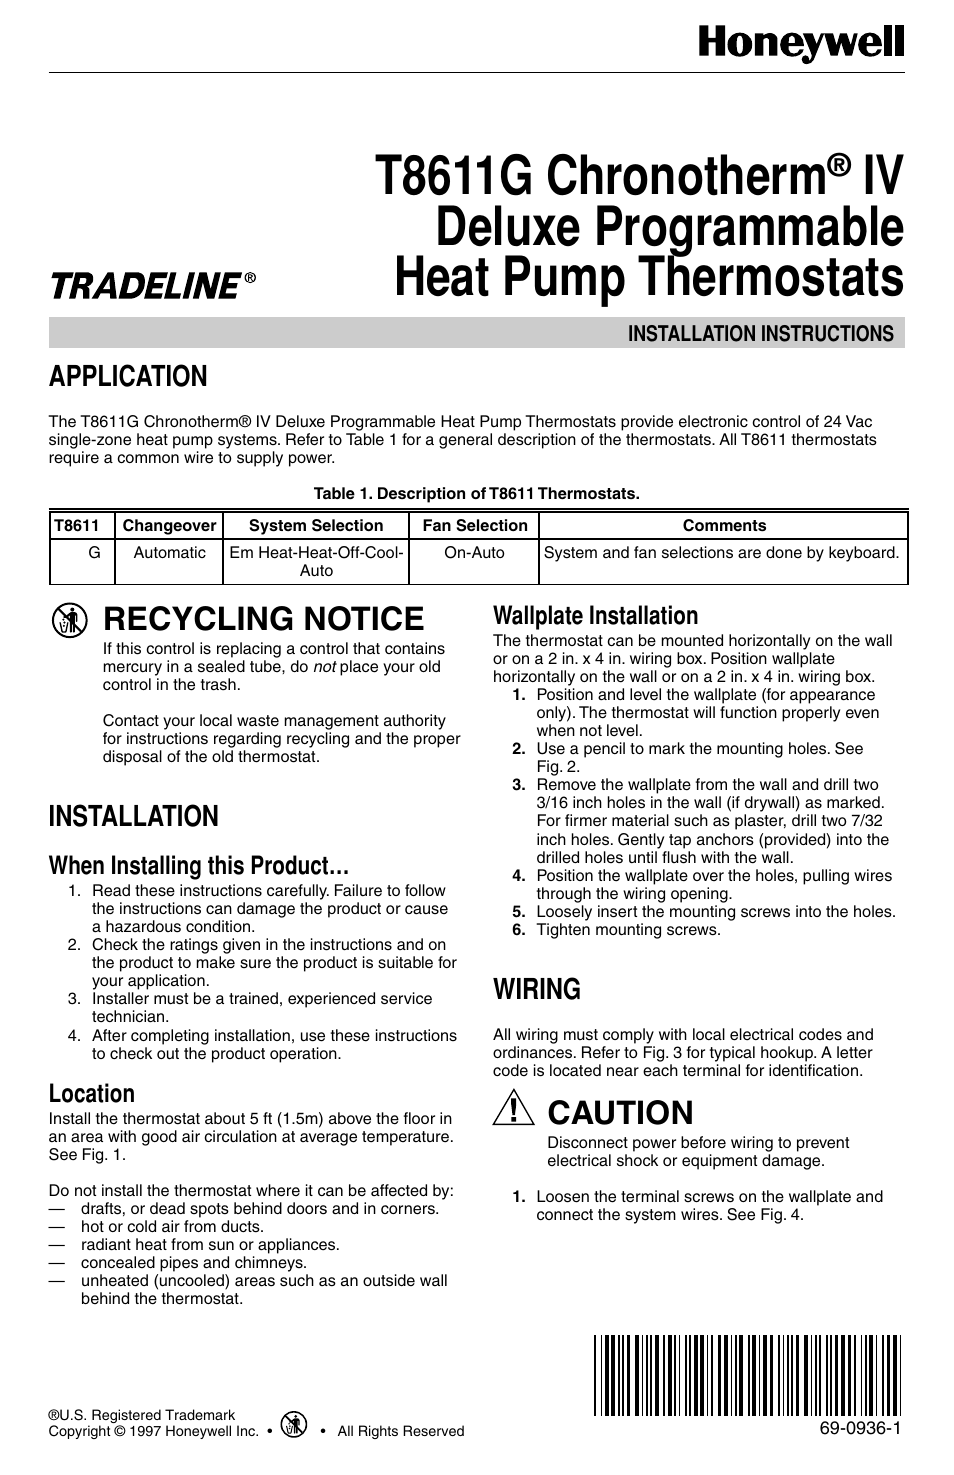 Honeywell T8611g Thermostat Wiring Diagram Portal Instructions Wifi Setup Today Manual Guide Chronotherm Iv User 12 Pages Rh Manualsdir Com Heat Pump